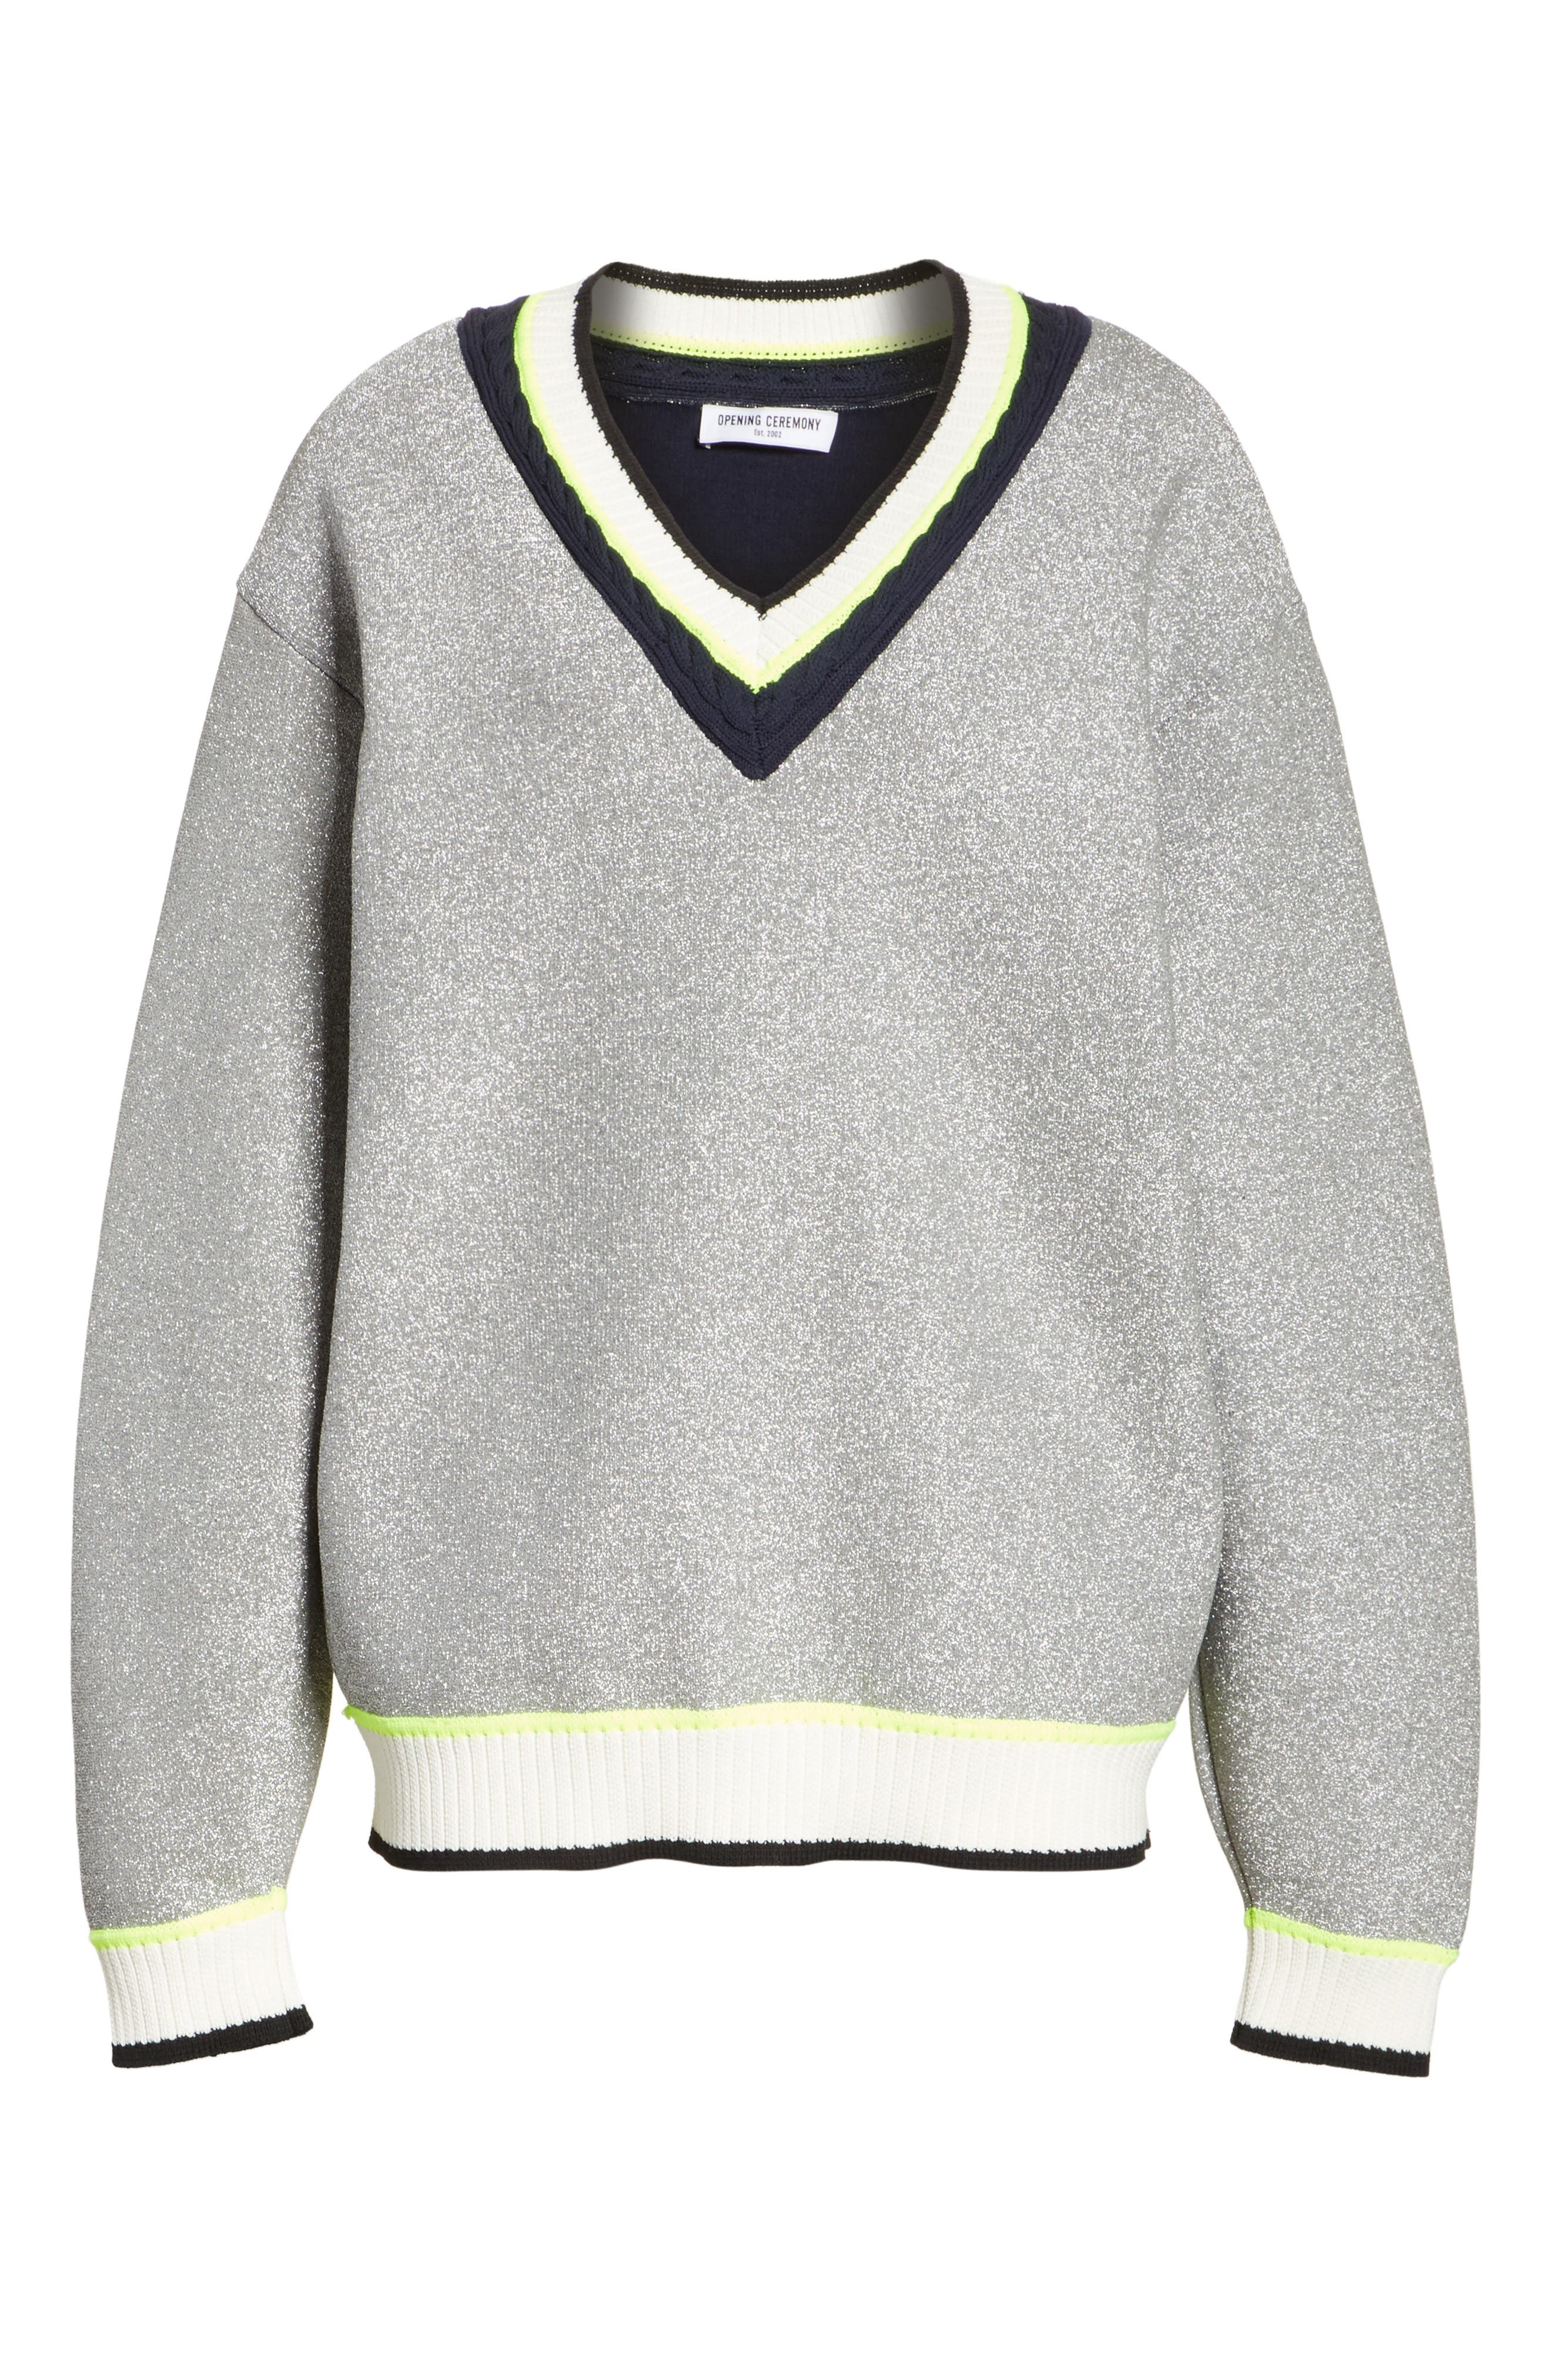 Sport Cable Neck Sweater,                             Alternate thumbnail 6, color,